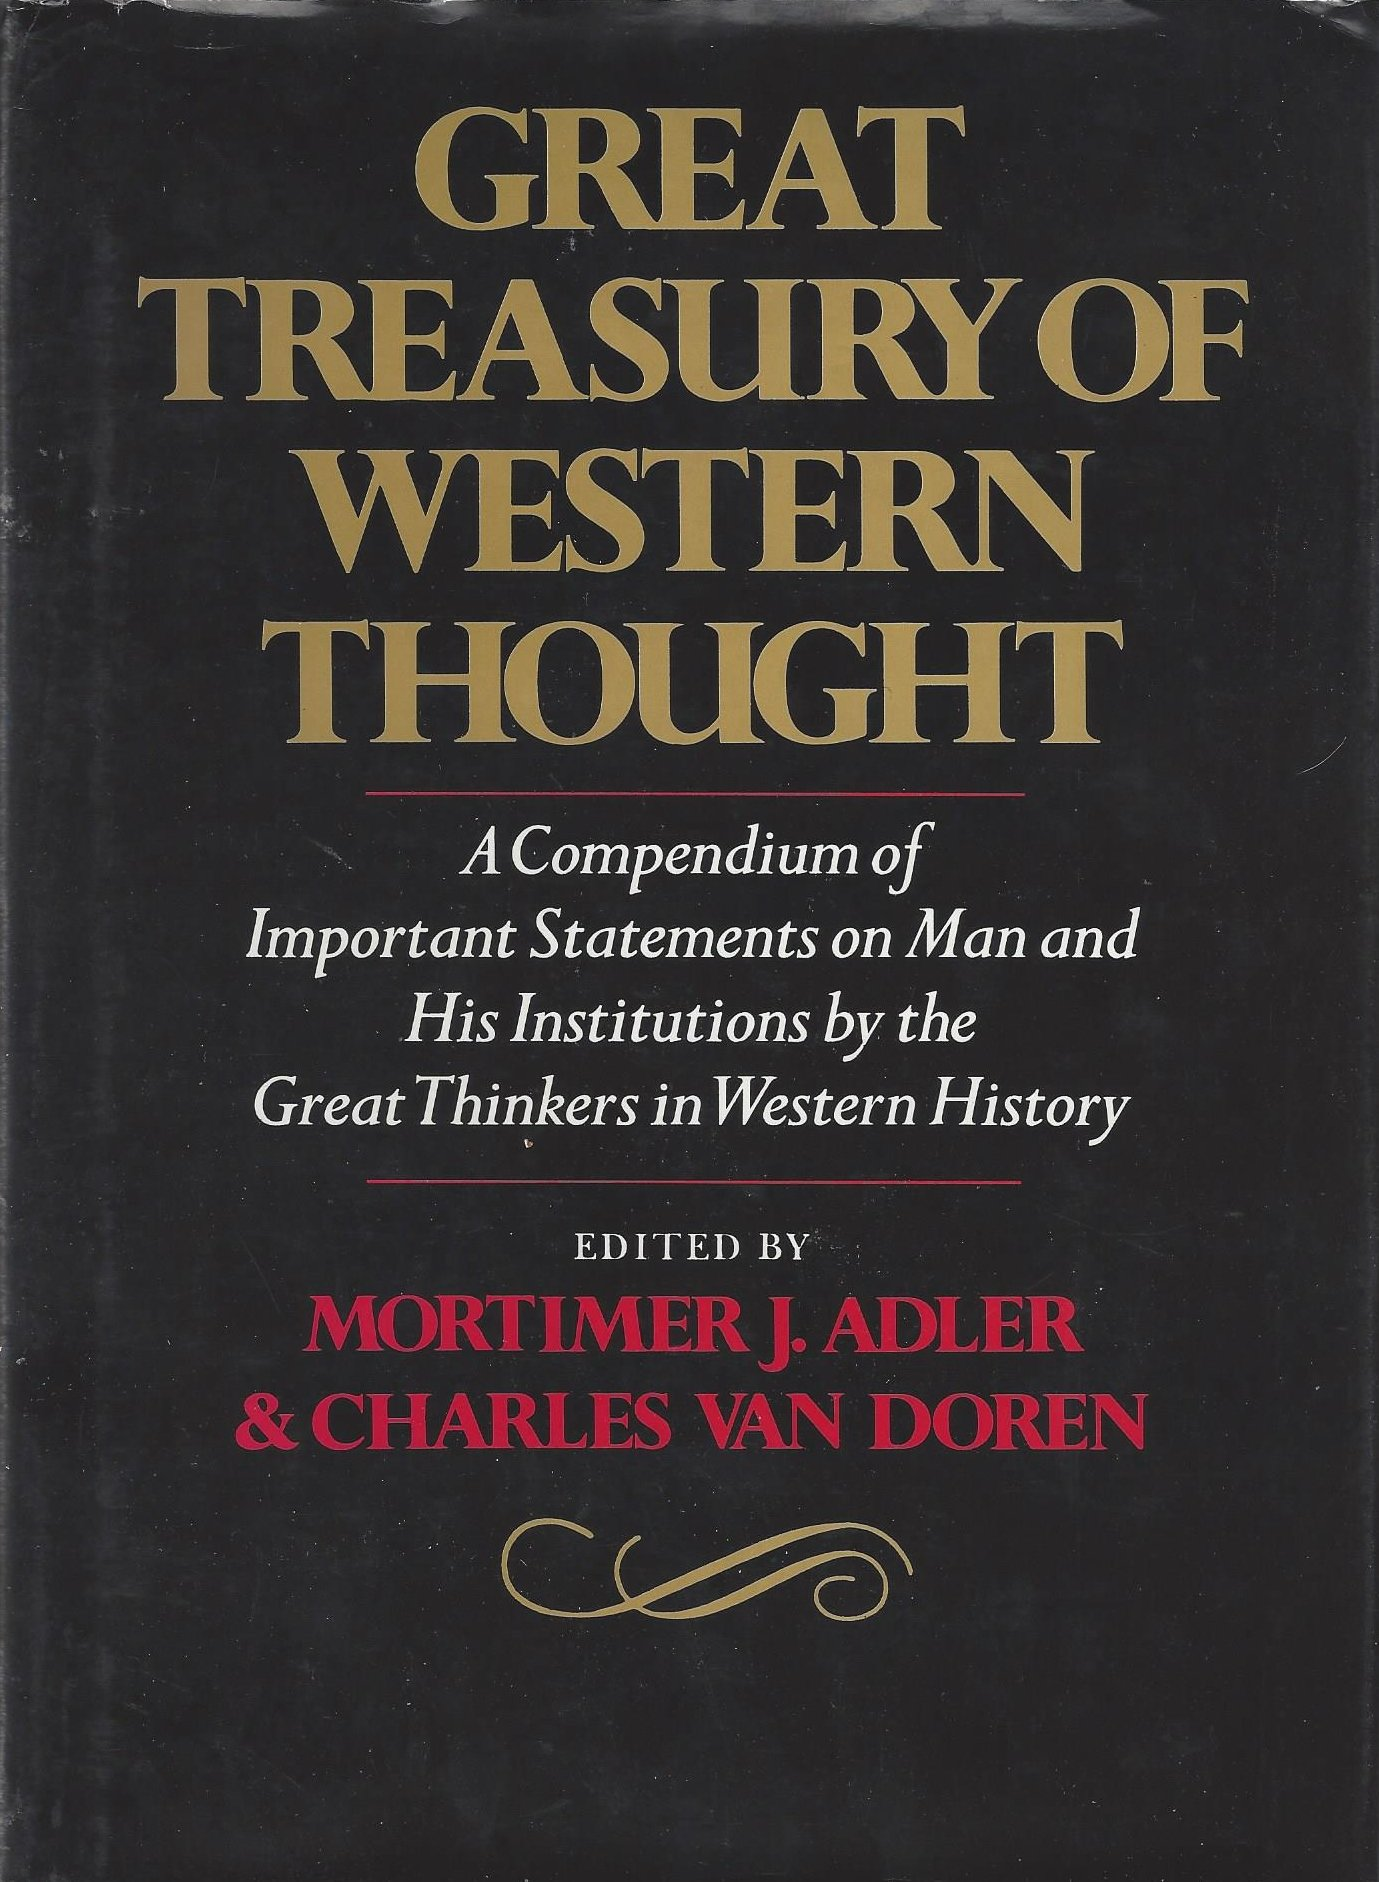 Great Treasury of Western Thought: A Compendium of Important Statements and Comments on Man and His Institutions by Great Thinkers in Western History by Brand: Libraries Unlimited